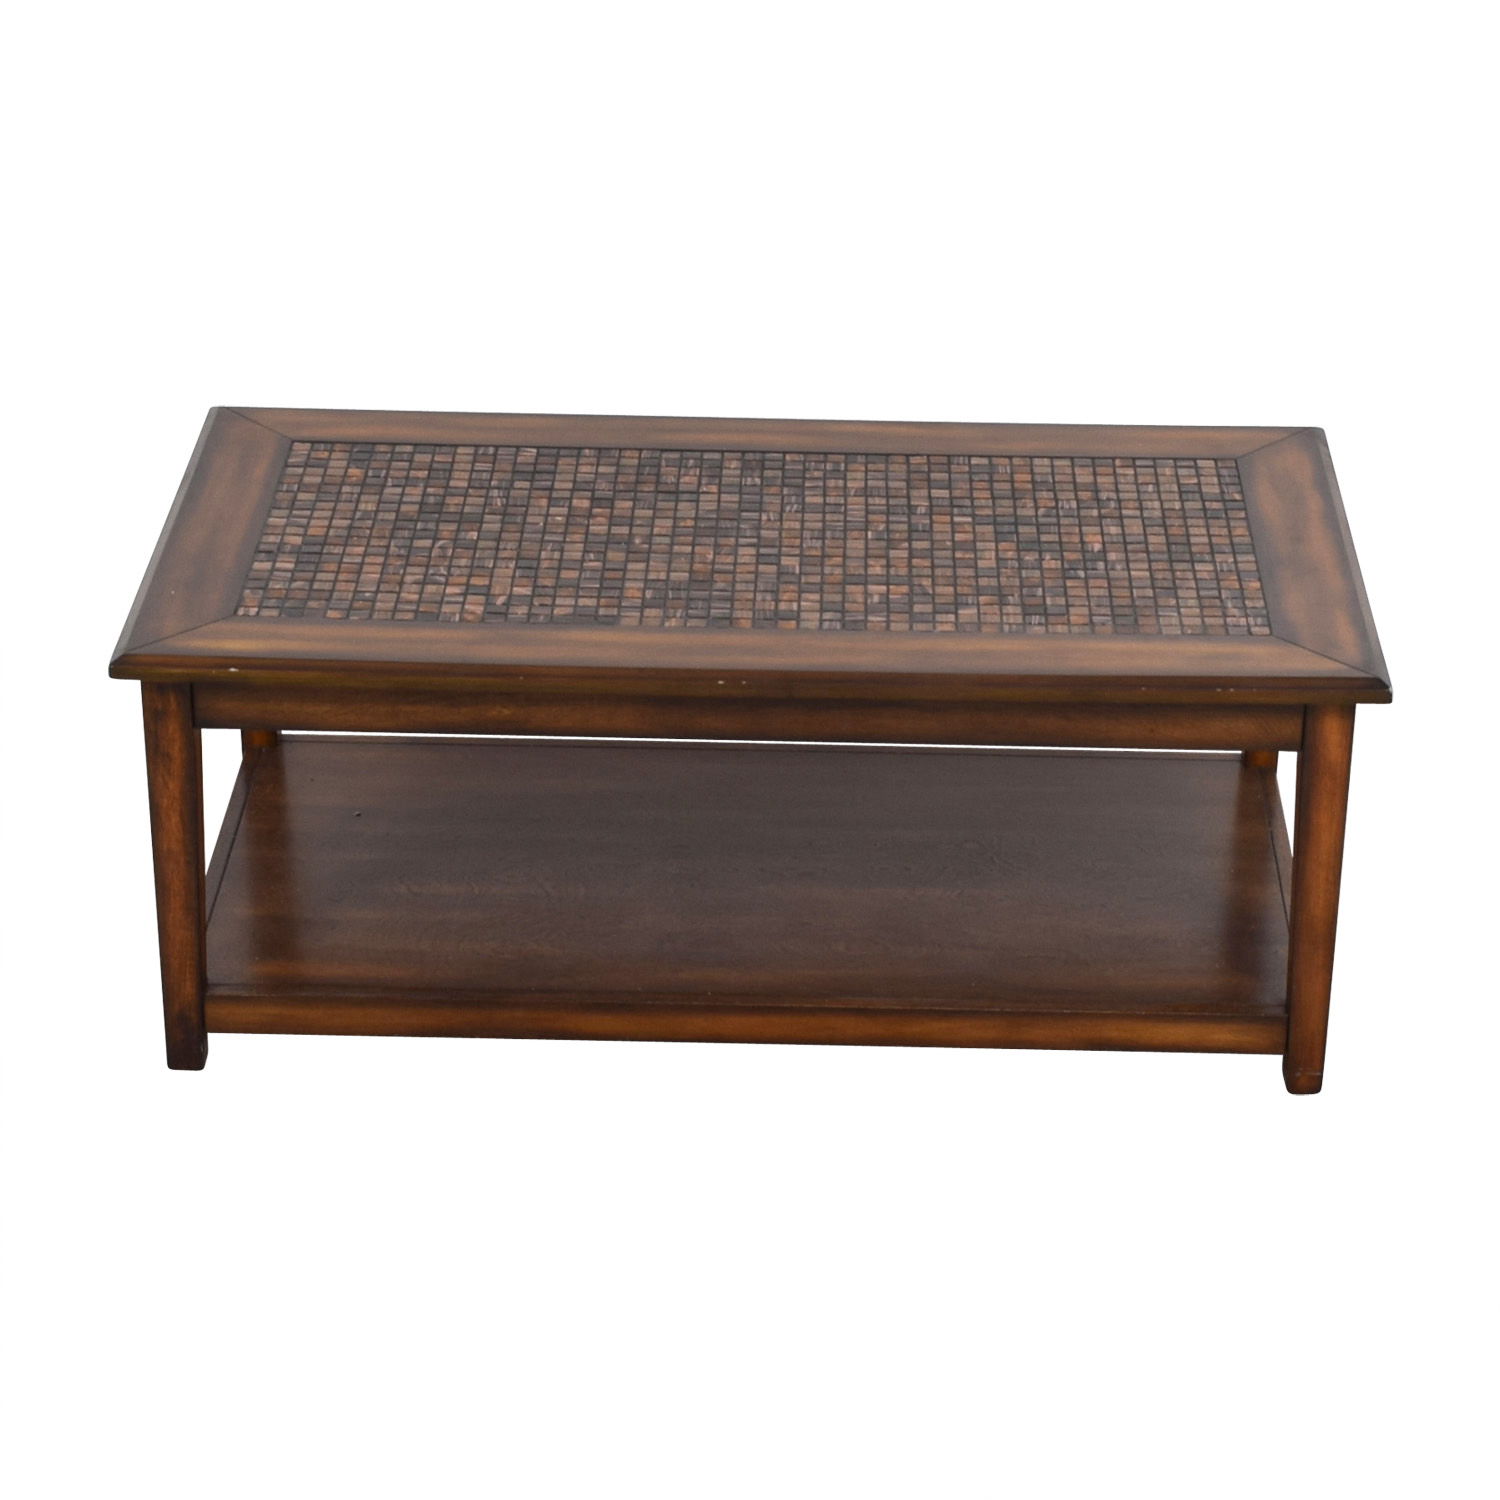 Raymour & Flanigan Raymour & Flanigan Wynn Mosaic Wood Coffee Table Sofas